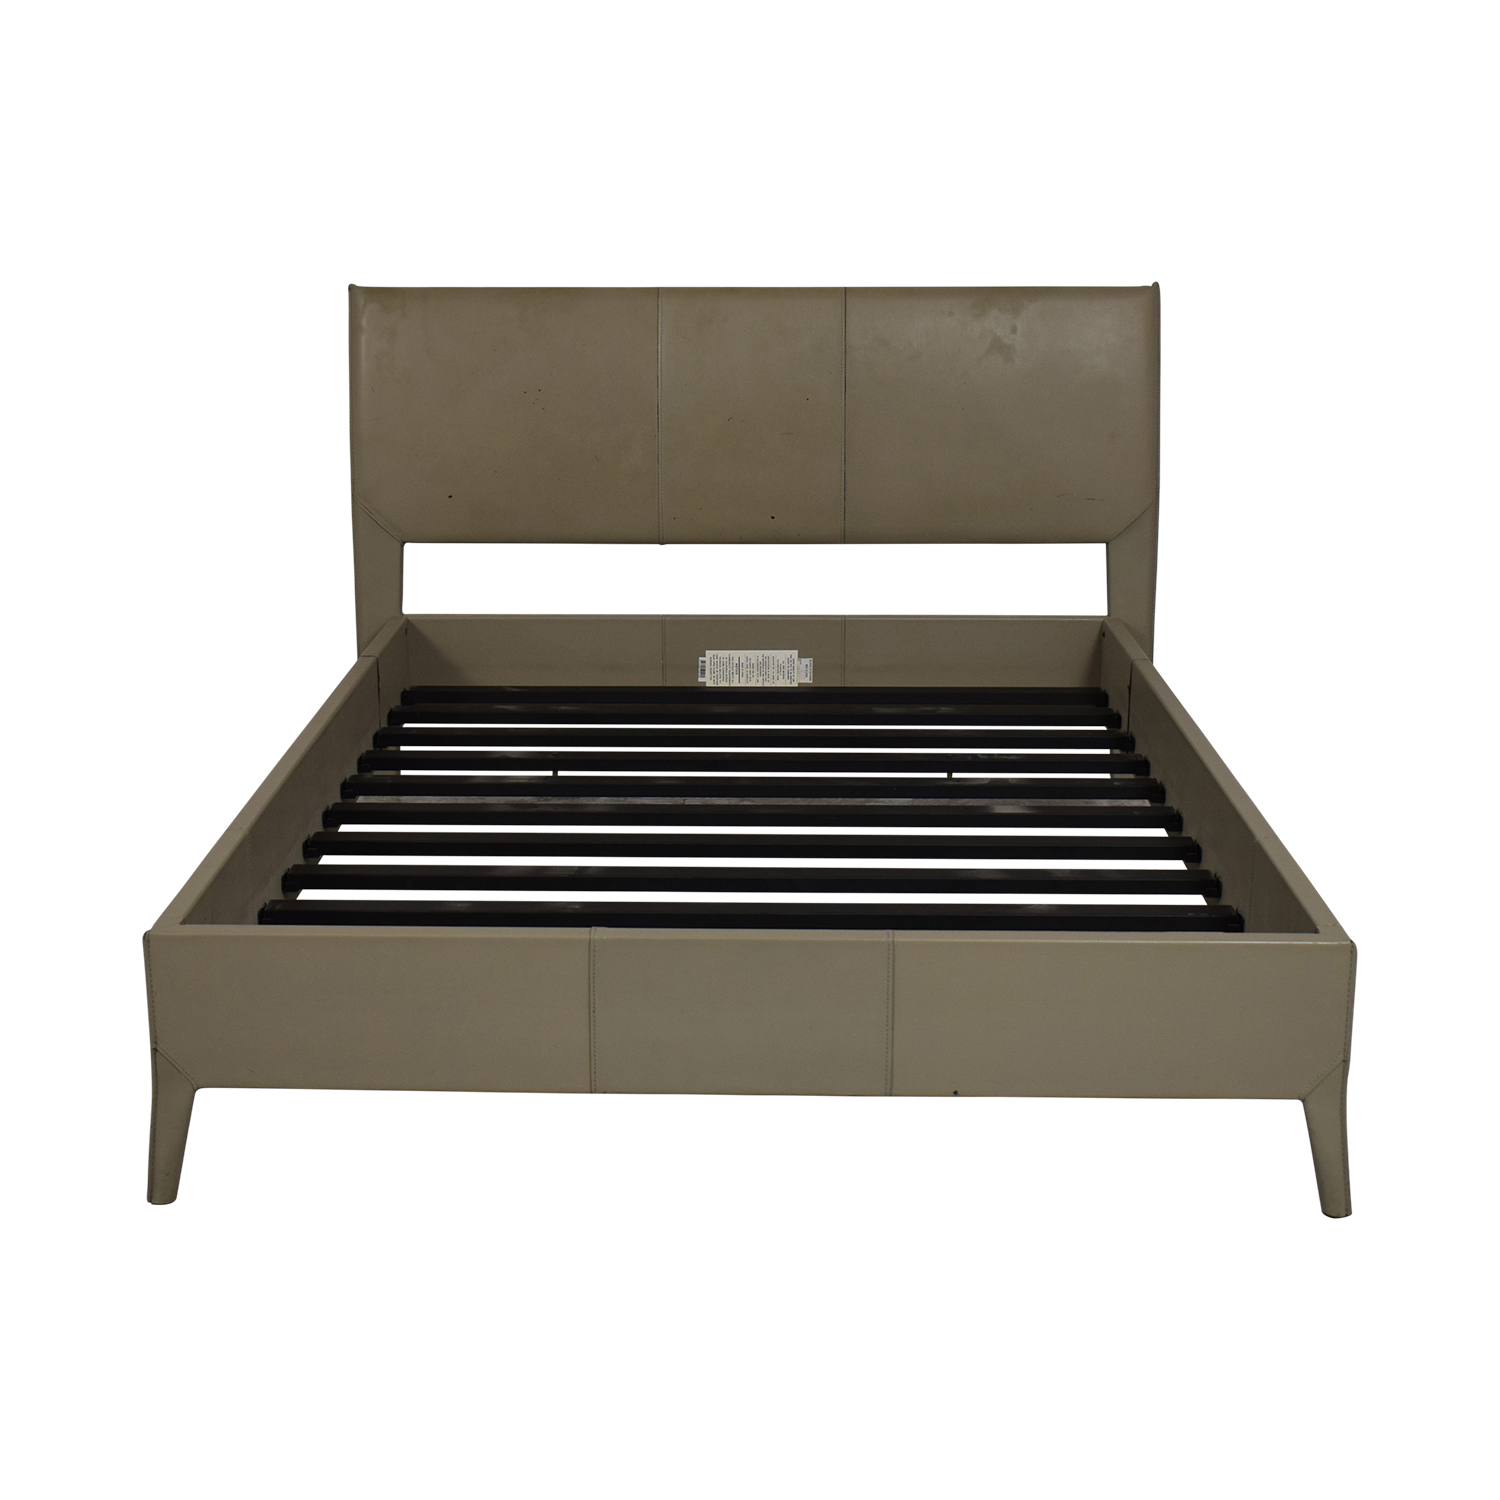 Crate & Barrel Crate & Barrel Grey Full Bed for sale